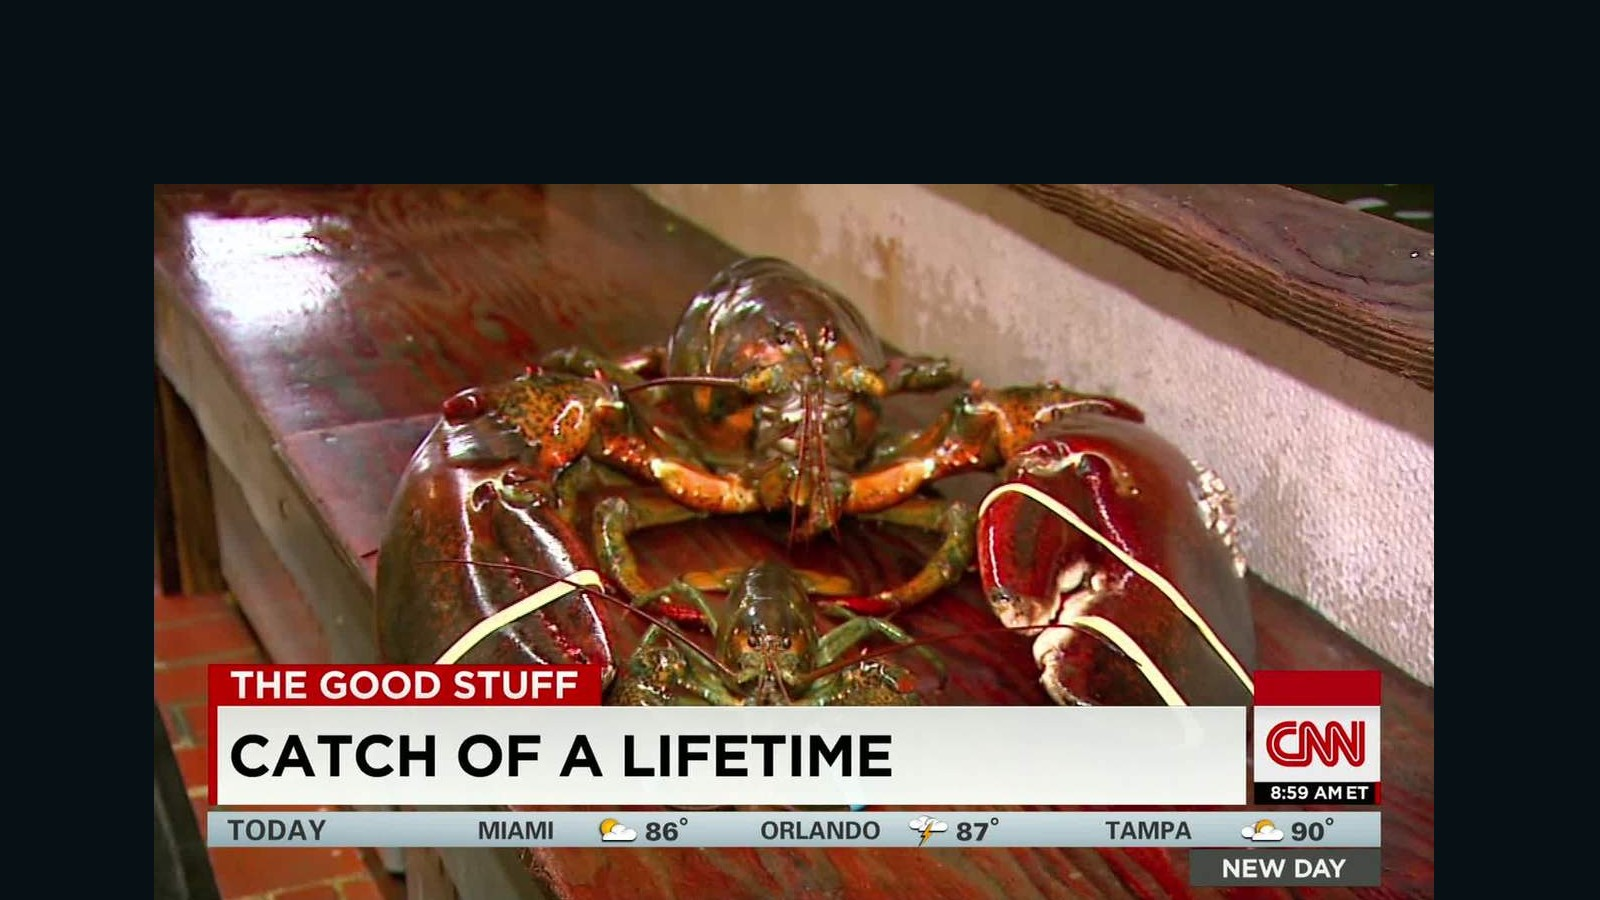 23-pound lobster is 95 years old - CNN Video